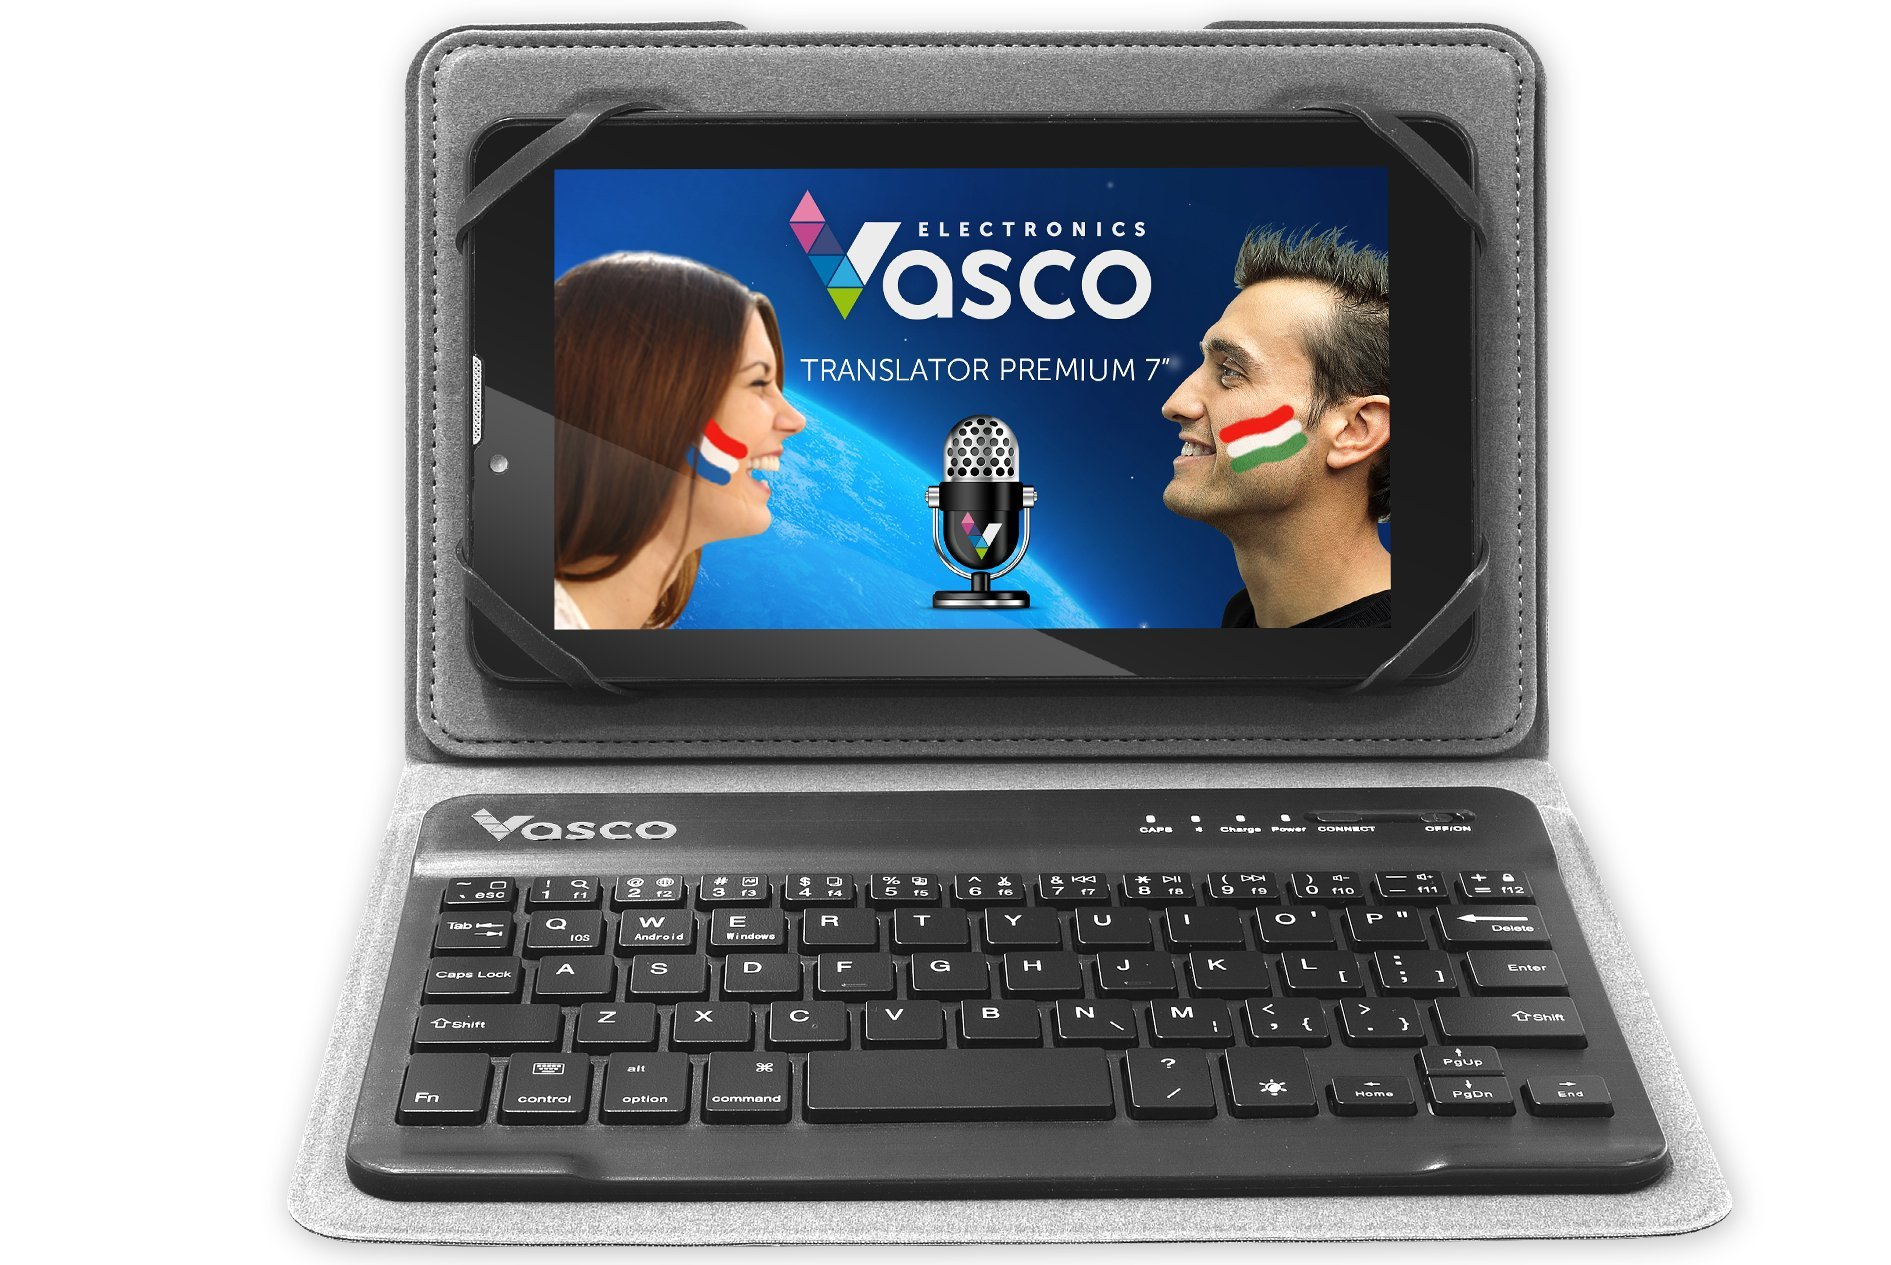 Vasco Translator Premium 7'' + Keyboard: Electronic Voice Translator with Comfortable Keyboard